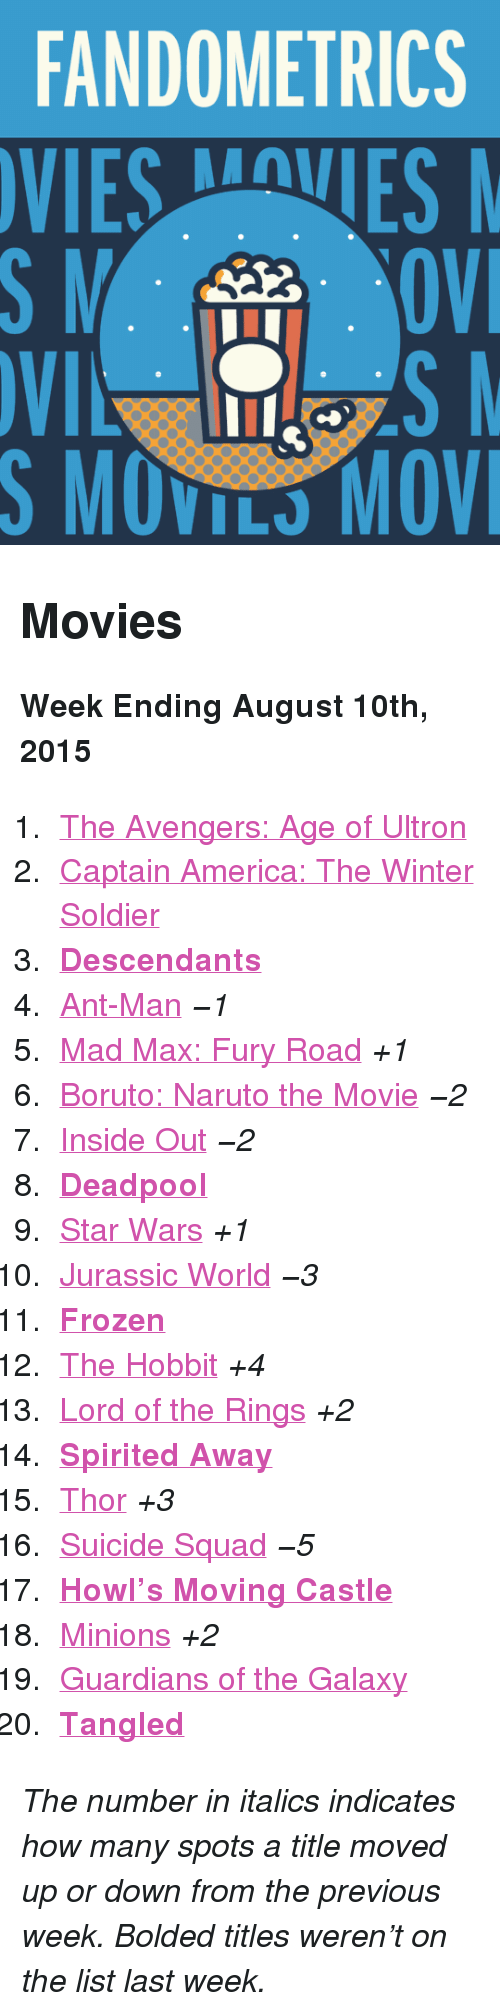 "ant man: FANDOMETRICS  VIESVES  S MOVILS MOV <h2>Movies</h2><p><b>Week Ending August 10th, 2015</b></p><ol><li><a href=""http://www.tumblr.com/search/age%20of%20ultron"">The Avengers: Age of Ultron</a></li>  <li><a href=""http://www.tumblr.com/search/captain%20america"">Captain America: The Winter Soldier</a></li>  <li><a href=""http://www.tumblr.com/search/disney%20descendants""><b>Descendants</b></a></li>  <li><a href=""http://www.tumblr.com/search/ant%20man"">Ant-Man</a> <i>−1</i></li>  <li><a href=""http://www.tumblr.com/search/mad%20max"">Mad Max: Fury Road</a> <i>+1</i></li>  <li><a href=""http://www.tumblr.com/search/boruto%20the%20movie"">Boruto: Naruto the Movie</a> <i>−2</i></li>  <li><a href=""http://www.tumblr.com/search/inside%20out"">Inside Out</a> <i>−2</i></li>  <li><a href=""http://www.tumblr.com/search/deadpool""><b>Deadpool</b></a></li>  <li><a href=""http://www.tumblr.com/search/star%20wars"">Star Wars</a> <i>+1</i></li>  <li><a href=""http://www.tumblr.com/search/jurassic%20world"">Jurassic World</a> <i>−3</i></li>  <li><a href=""http://www.tumblr.com/search/frozen""><b>Frozen</b></a></li>  <li><a href=""http://www.tumblr.com/search/the%20hobbit"">The Hobbit</a> <i>+4</i></li>  <li><a href=""http://www.tumblr.com/search/lotr"">Lord of the Rings</a> <i>+2</i></li>  <li><a href=""http://www.tumblr.com/search/spirited%20away""><b>Spirited Away</b></a></li>  <li><a href=""http://www.tumblr.com/search/thor"">Thor</a> <i>+3</i></li>  <li><a href=""http://www.tumblr.com/search/suicide%20squad"">Suicide Squad</a> <i>−5</i></li>  <li><a href=""http://www.tumblr.com/search/howl's%20moving%20castle""><b>Howl&rsquo;s Moving Castle</b></a></li>  <li><a href=""http://www.tumblr.com/search/minions"">Minions</a> <i>+2</i></li>  <li><a href=""http://www.tumblr.com/search/guardians%20of%20the%20galaxy"">Guardians of the Galaxy</a> </li>  <li><a href=""http://www.tumblr.com/search/tangled""><b>Tangled</b></a></li></ol><p><i>The number in italics indicates how many spots a title moved up or down from the previous week. Bolded titles weren't on the list last week.</i></p>"